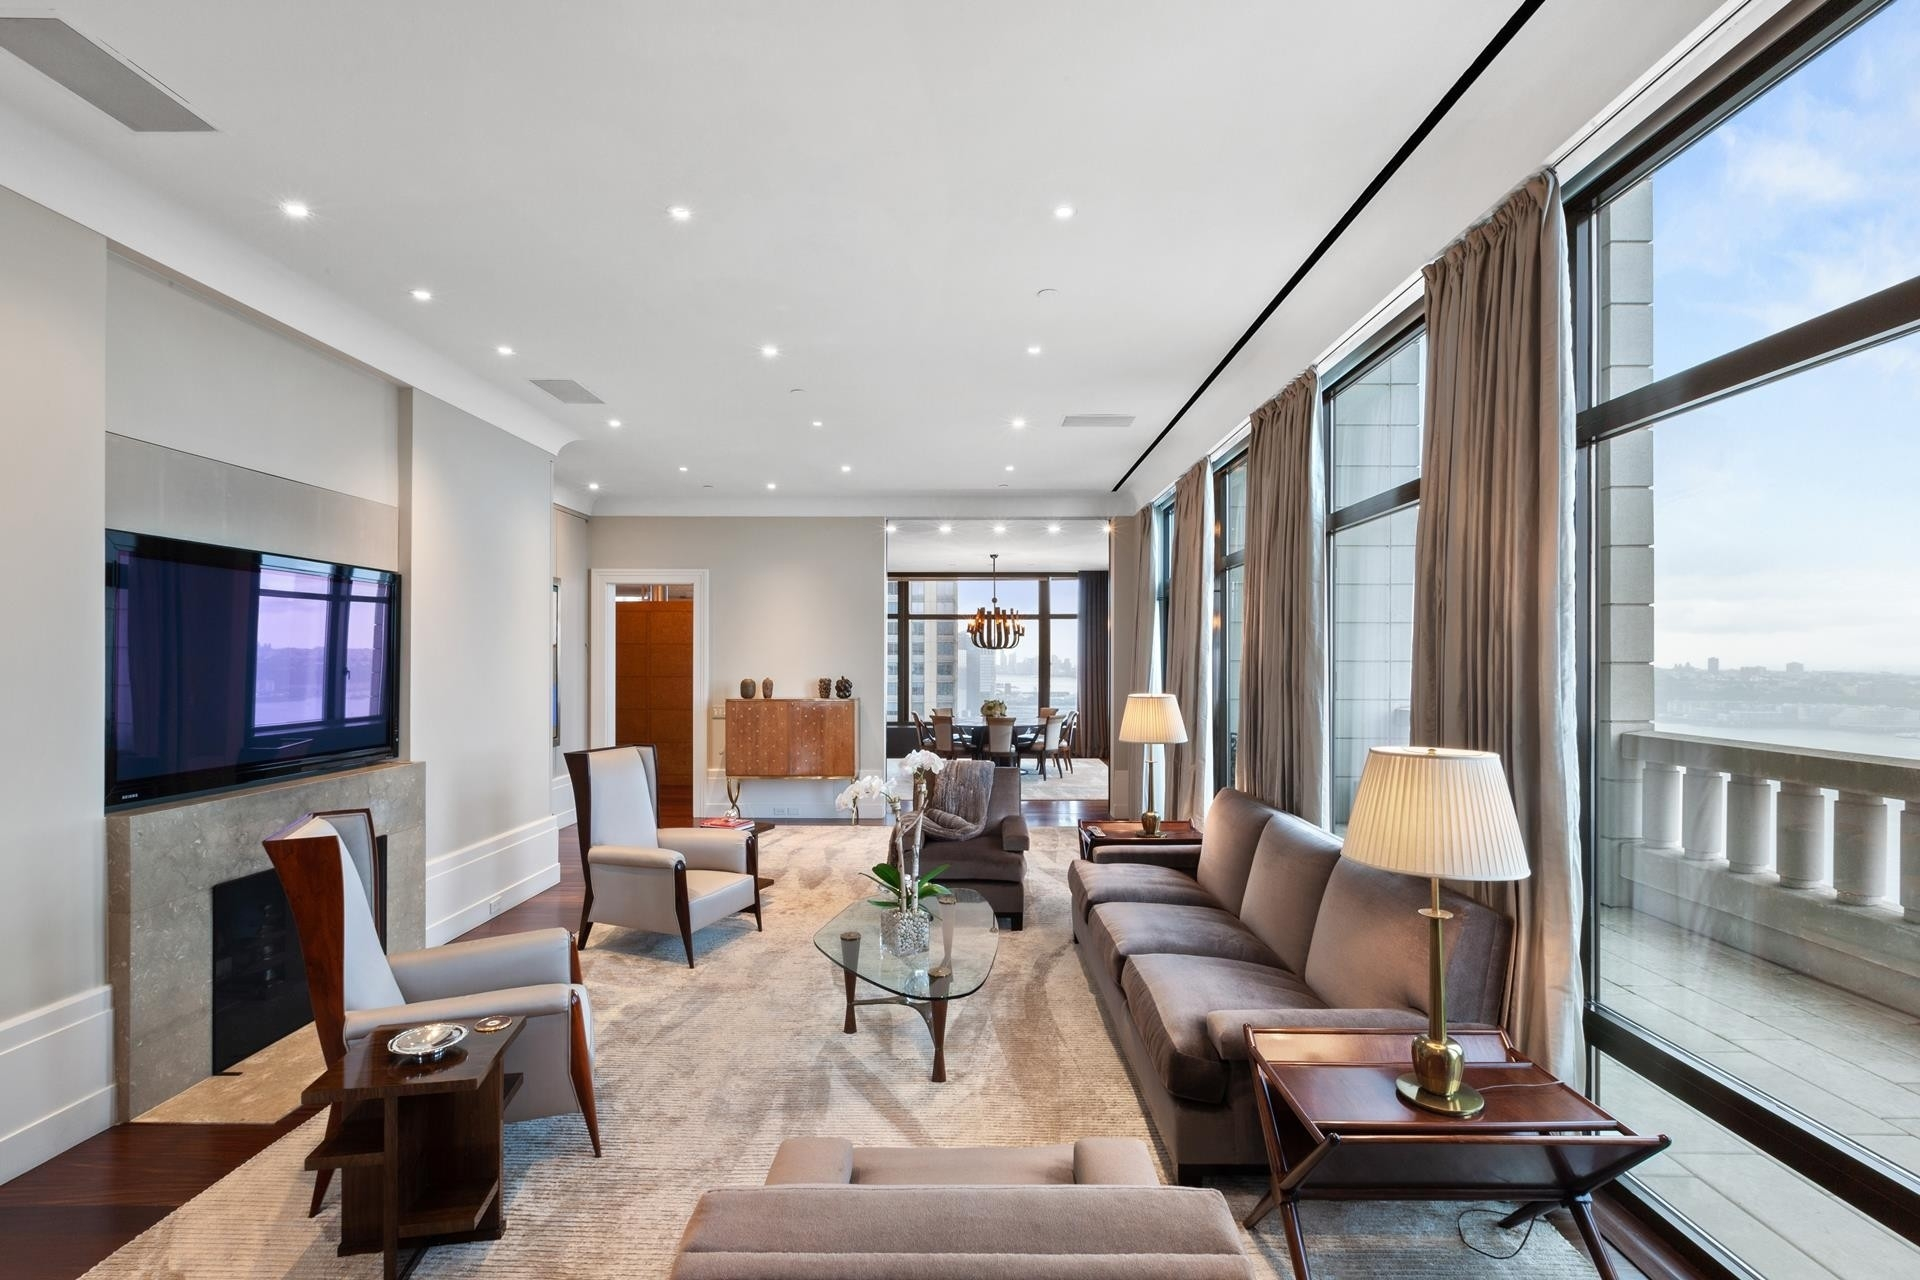 Property at The Heritage, 240 RIVERSIDE BLVD , PH Lincoln Square, New York, NY 10069